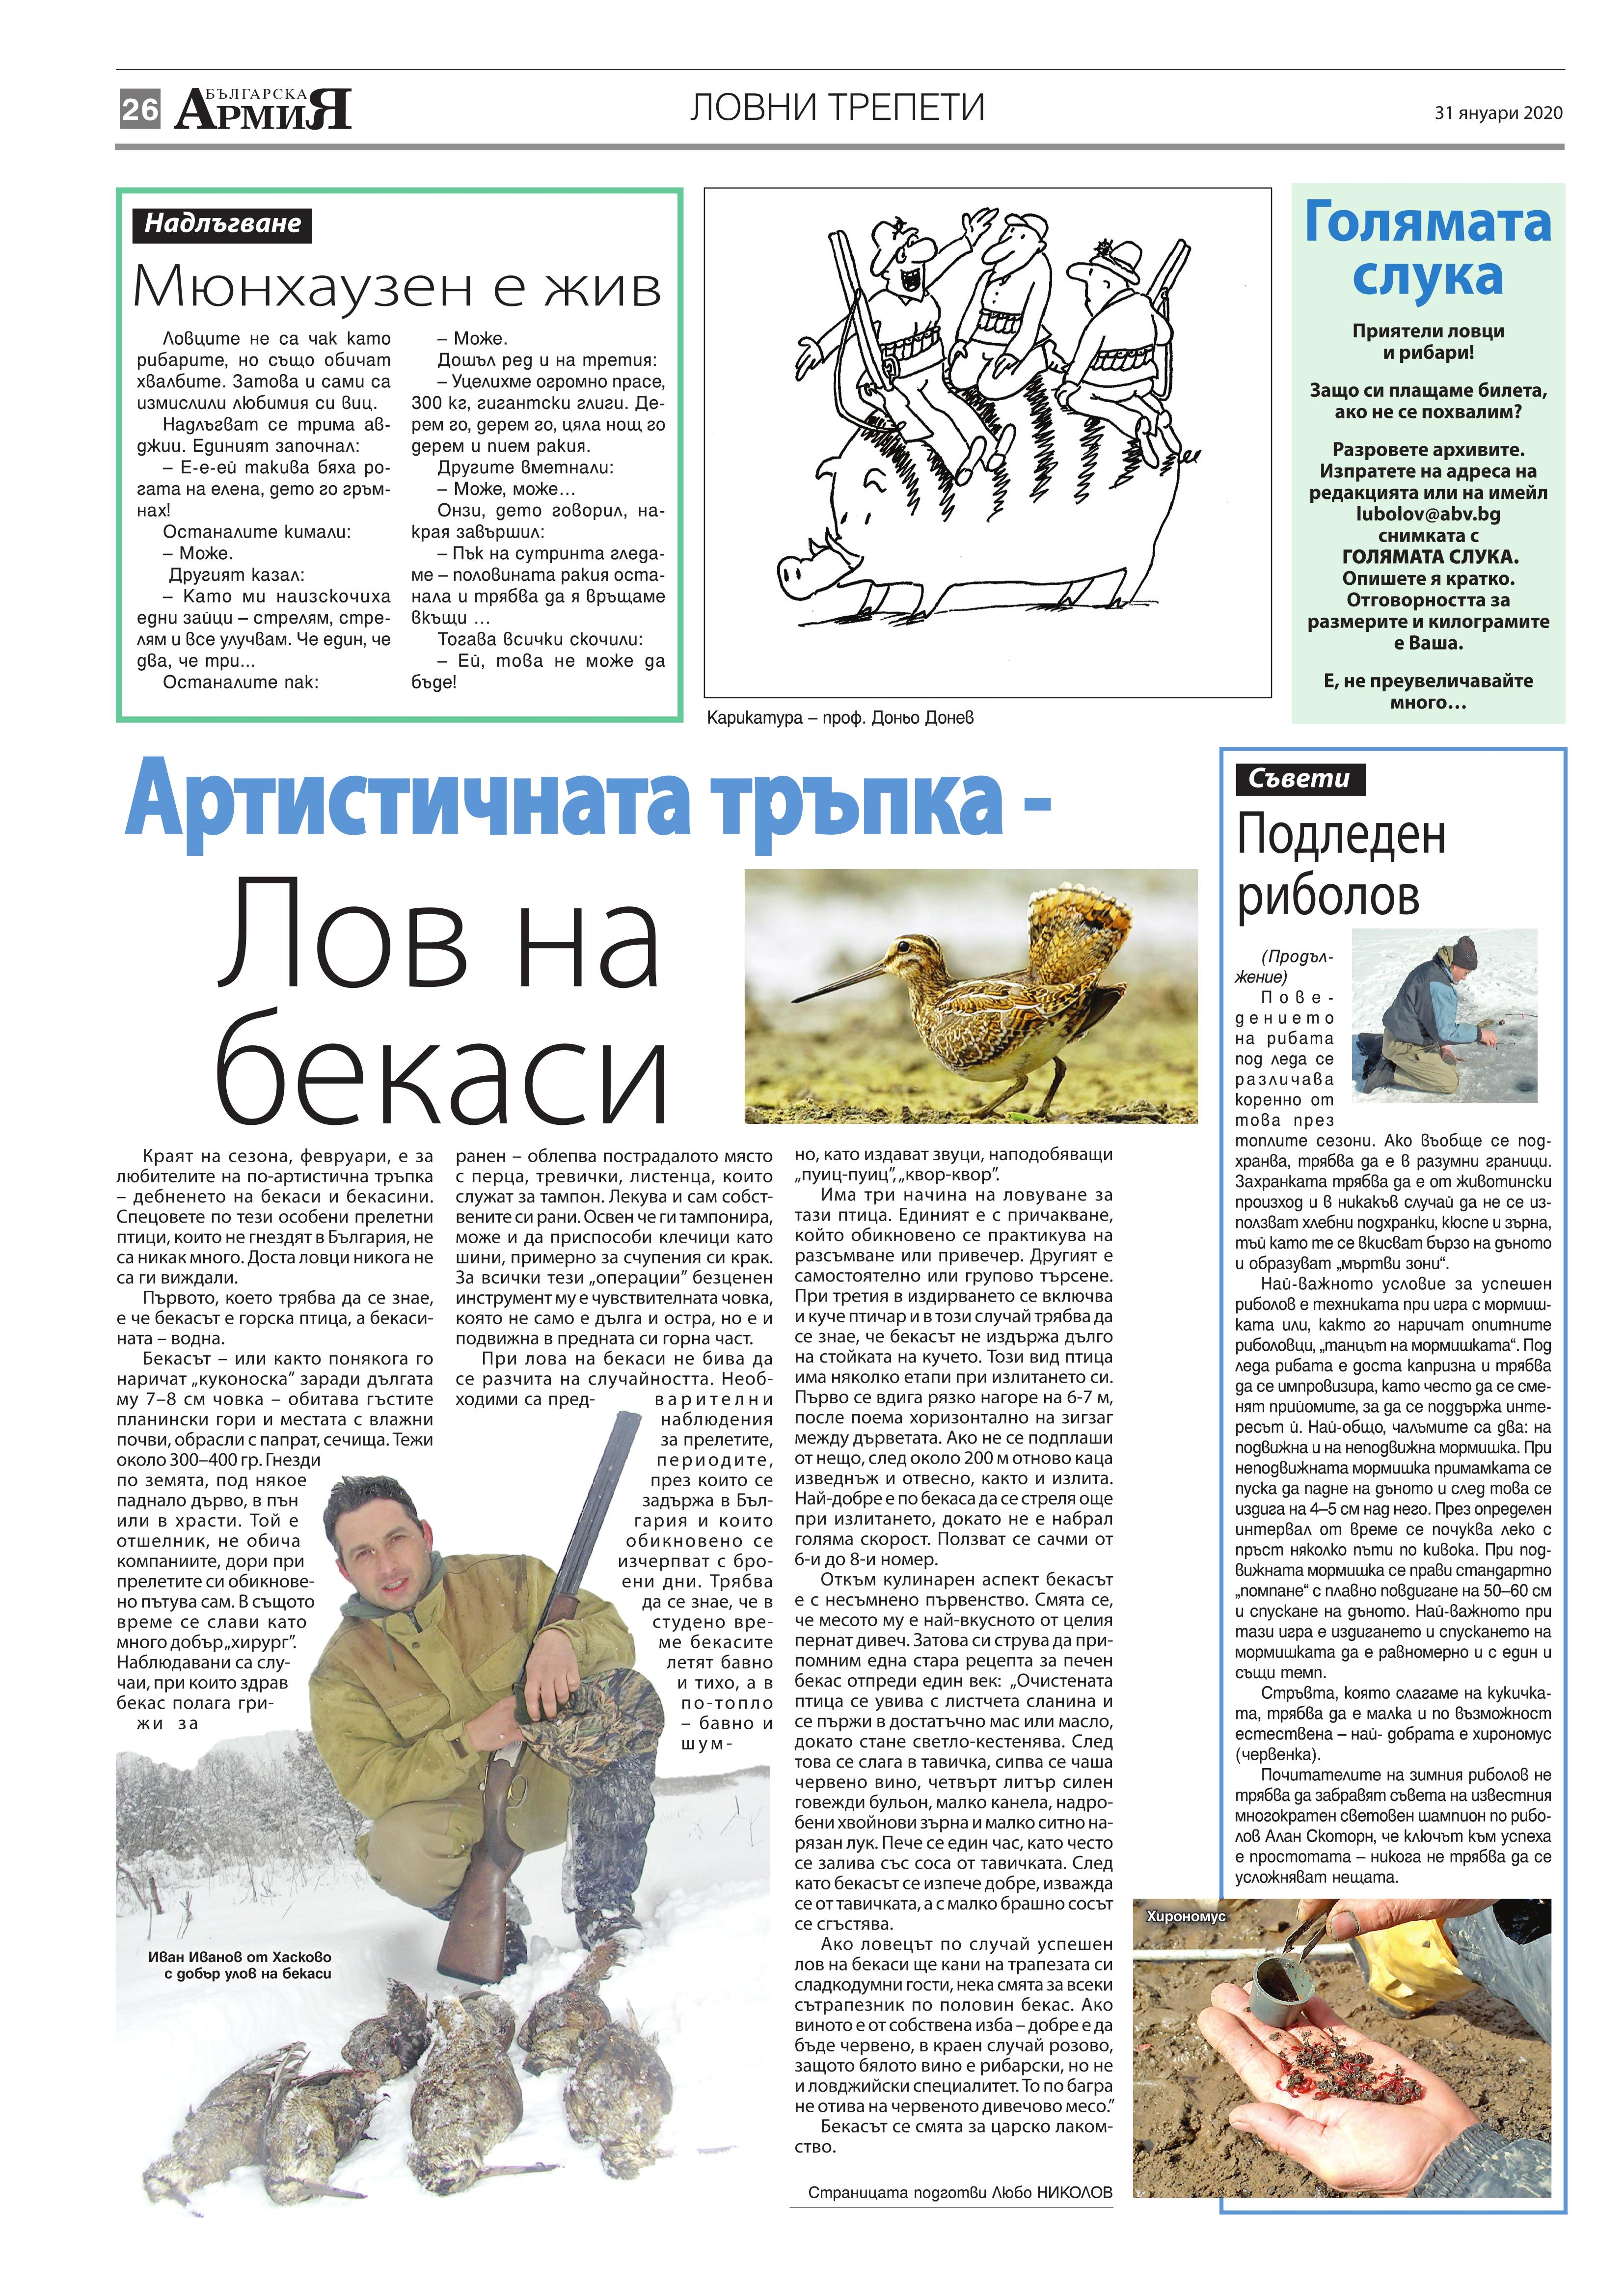 https://www.armymedia.bg/wp-content/uploads/2015/06/26.page1_-104.jpg